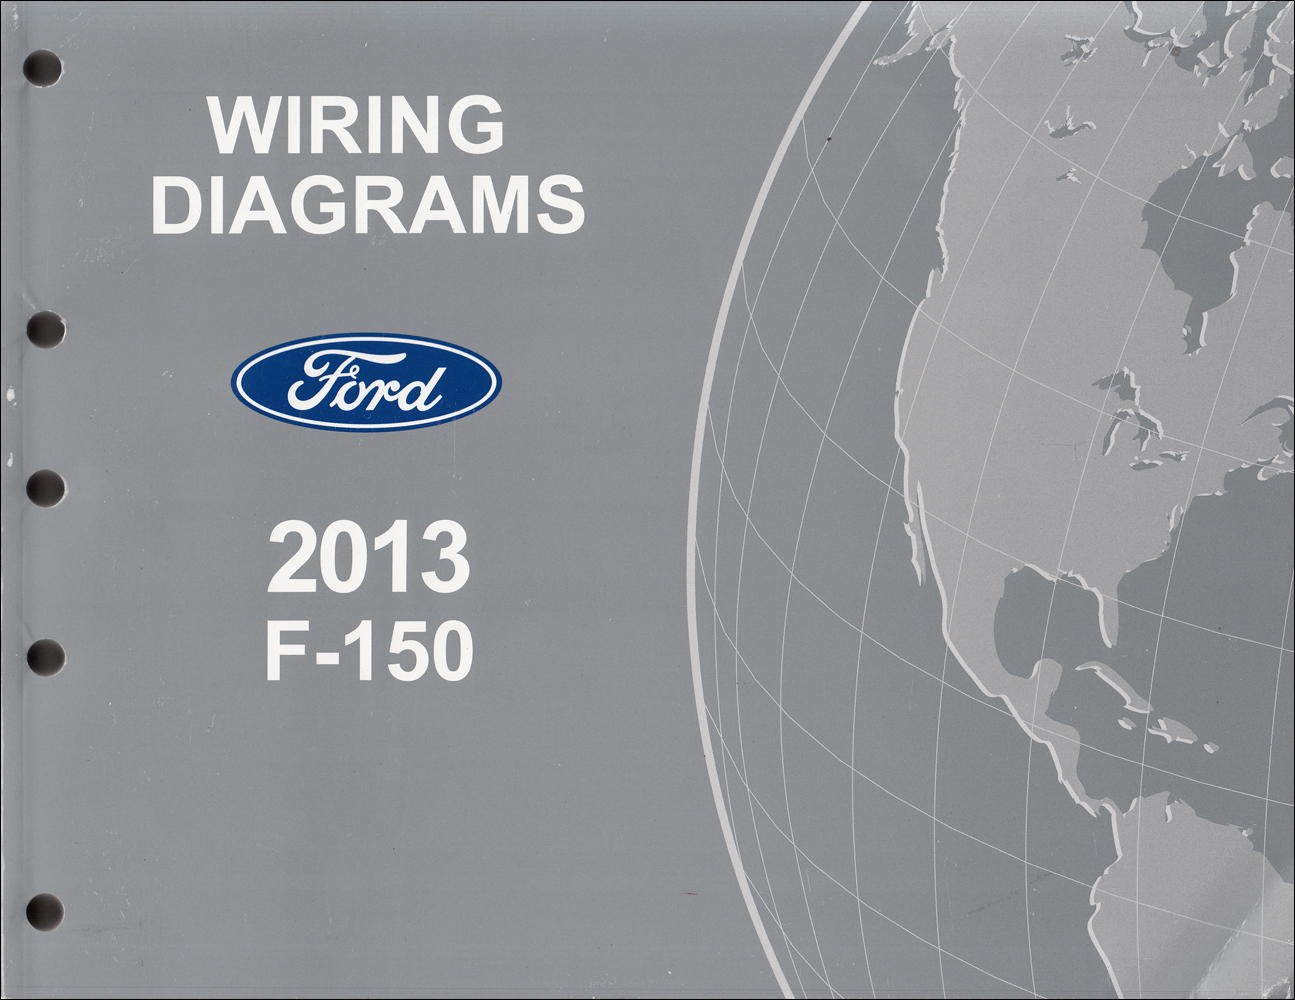 Wiring Diagram In Addition Ford F 150 Wiring Diagram As Well Ford